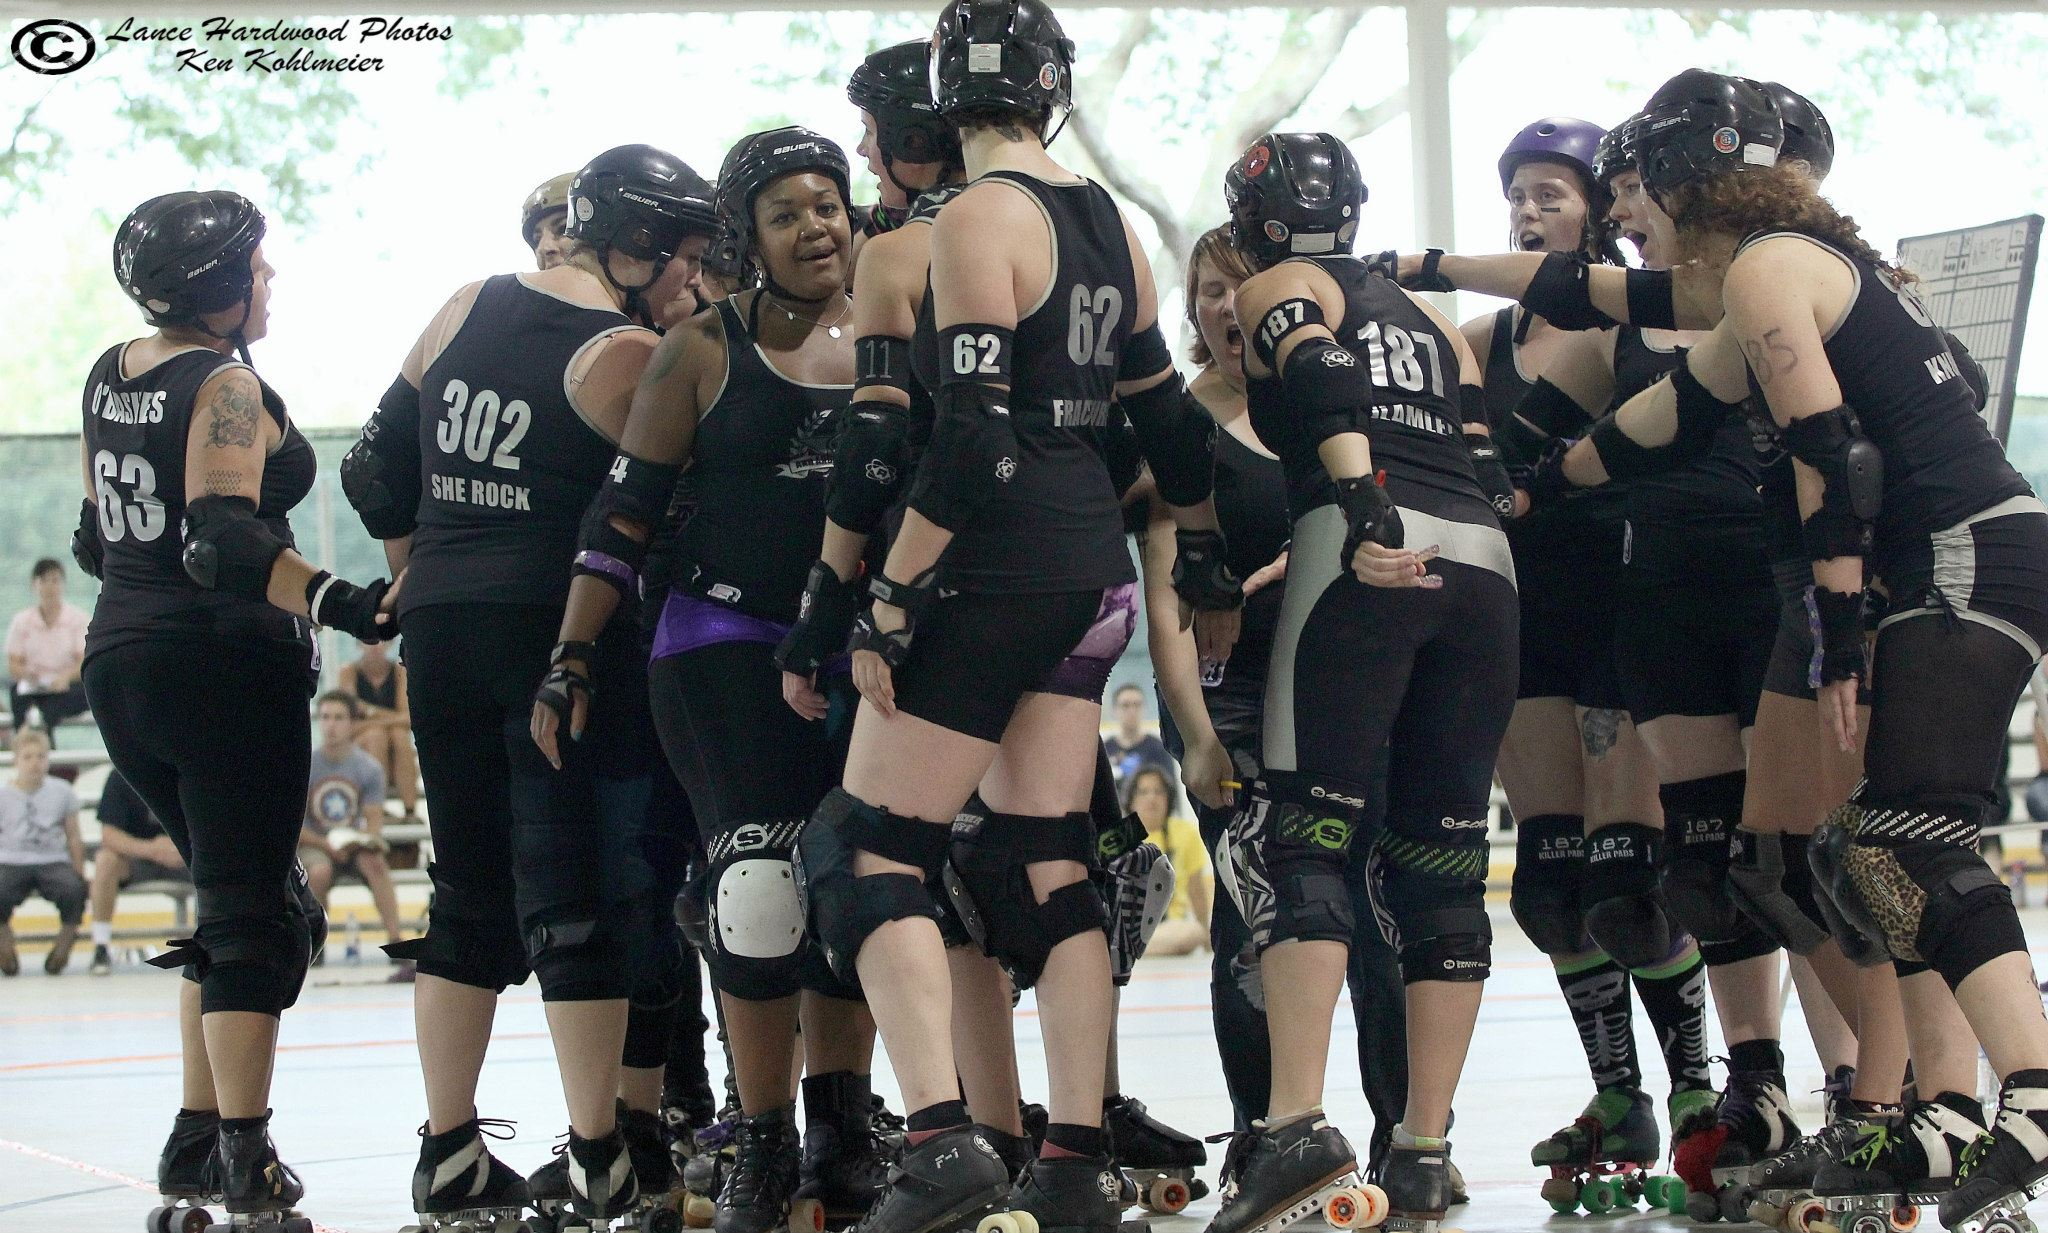 """Brawlstars get psyched up before playing Grand Raggidy Roller Girls, August 2, 2014 at Buhr Park. /  """"Lance Hardwood"""" Photos"""